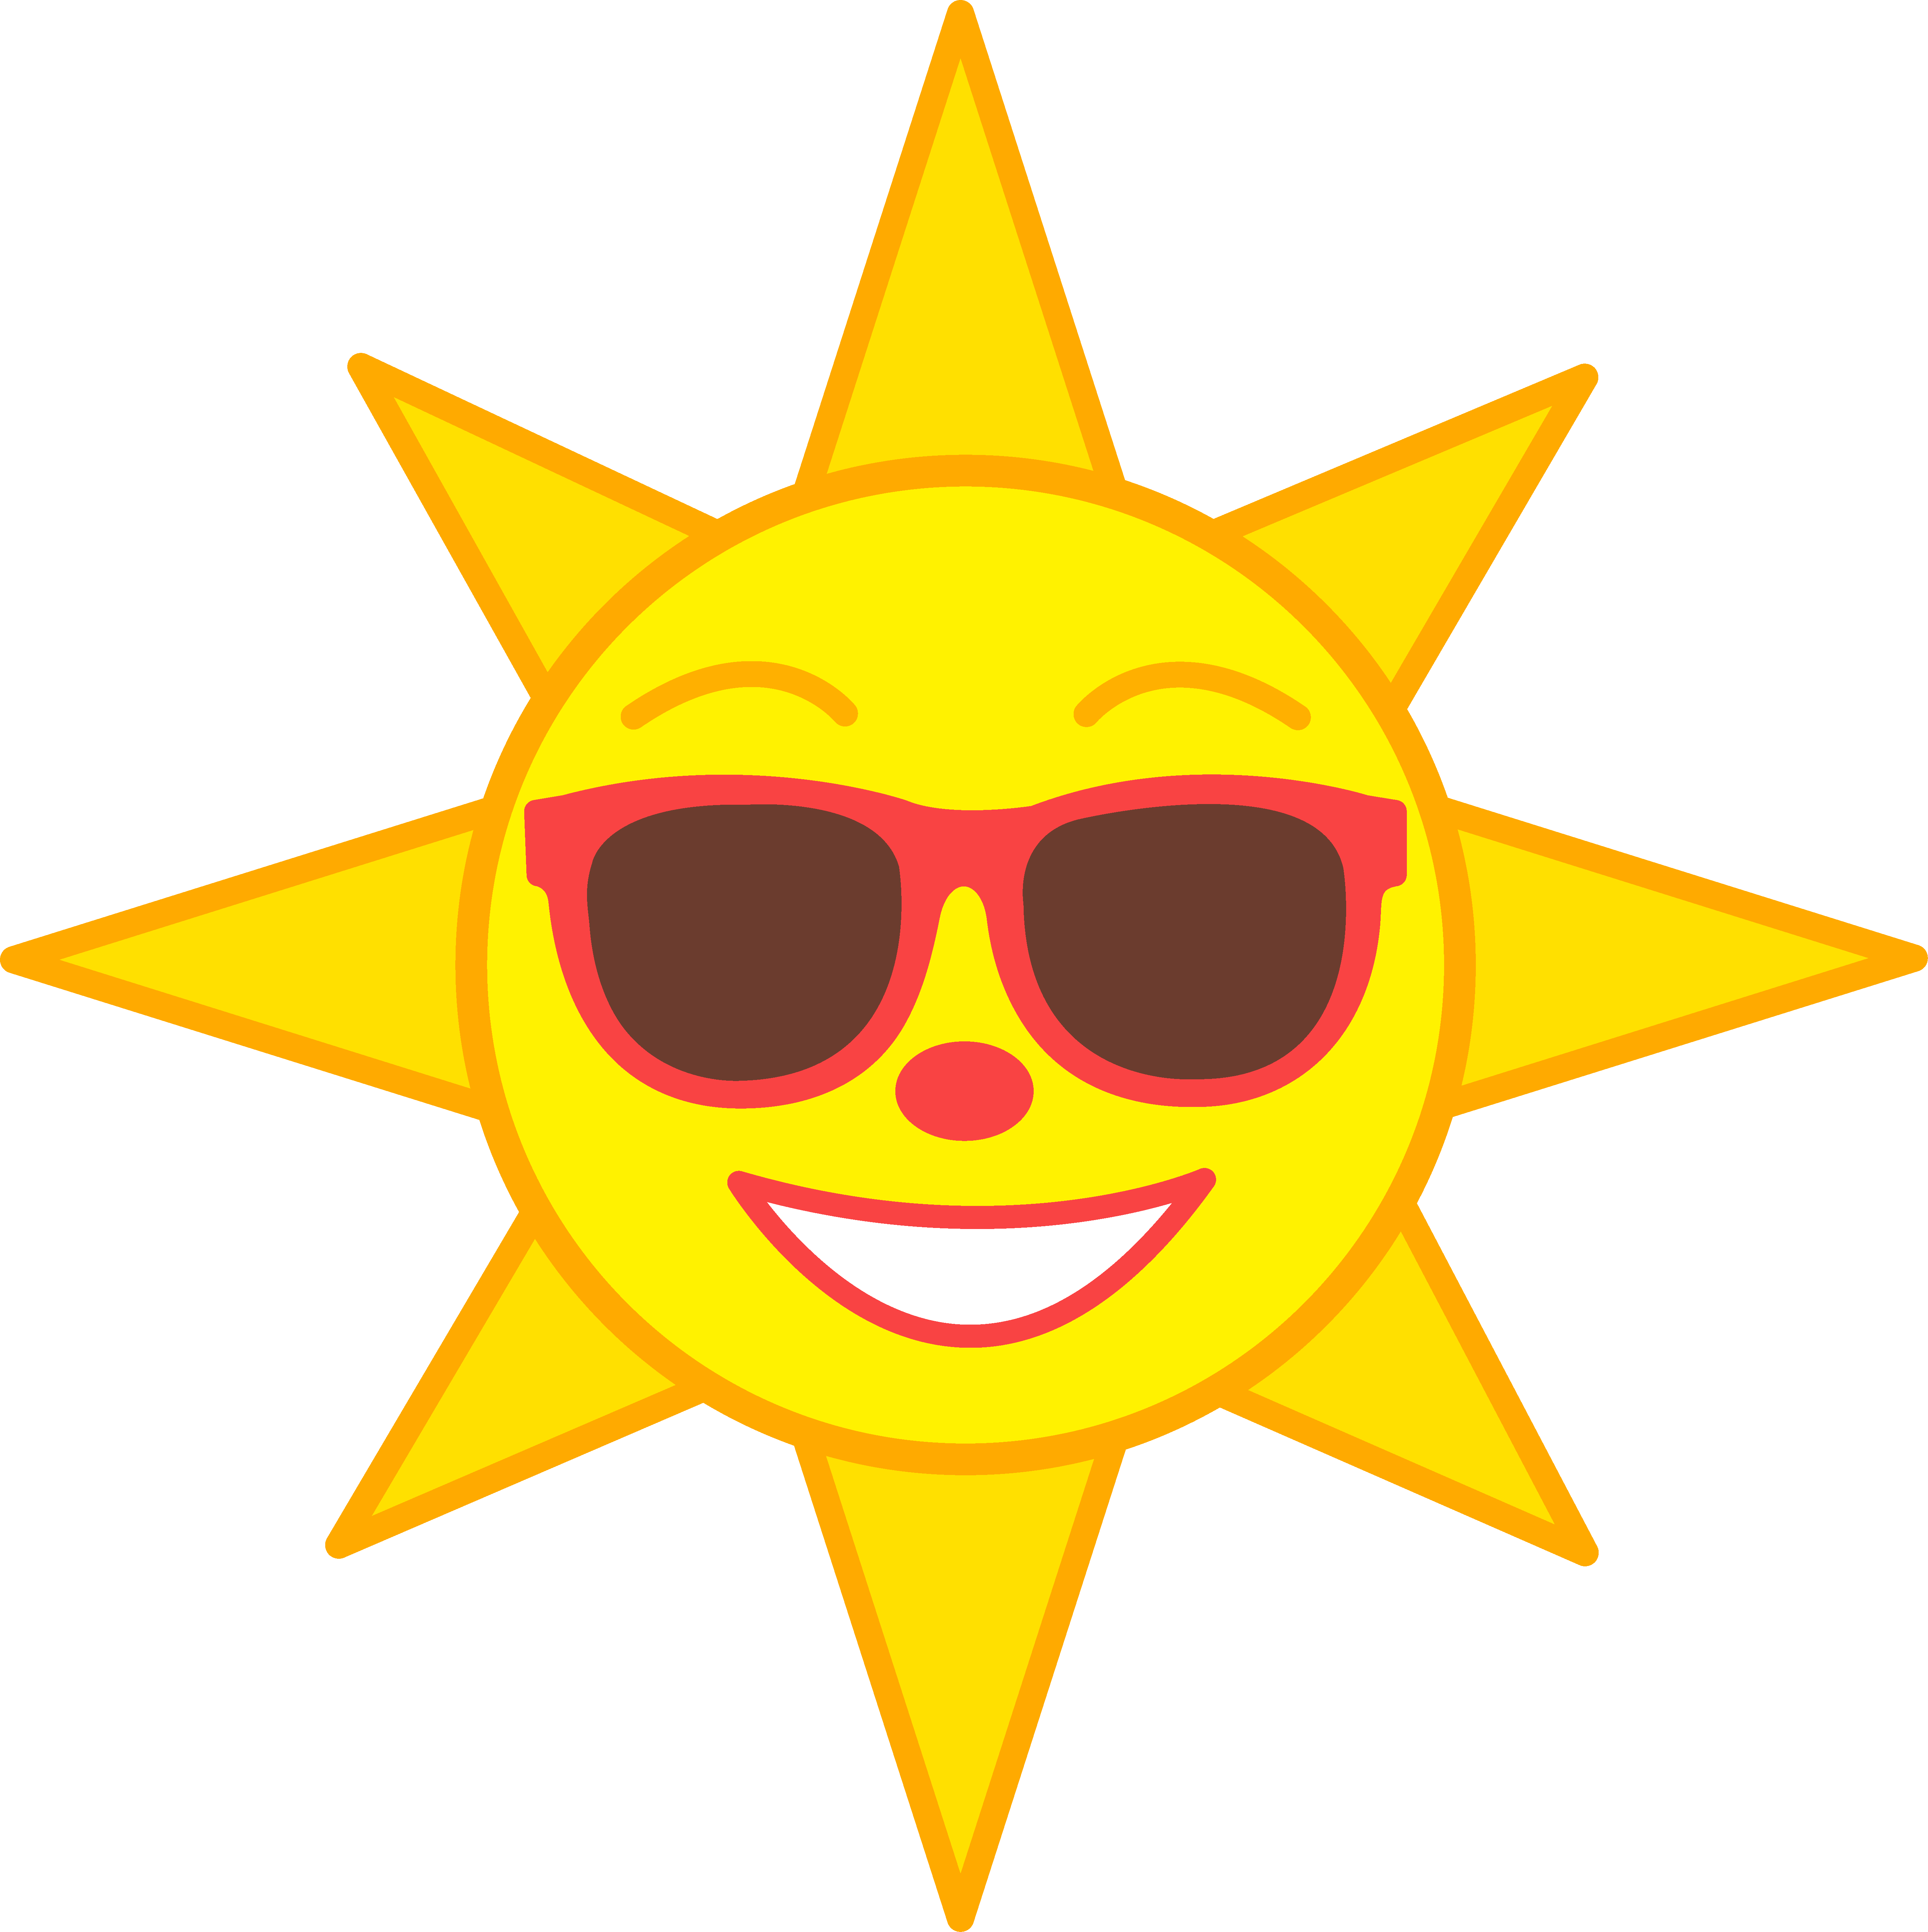 Sun Clip Art | Clipart library - Free Clipart Images